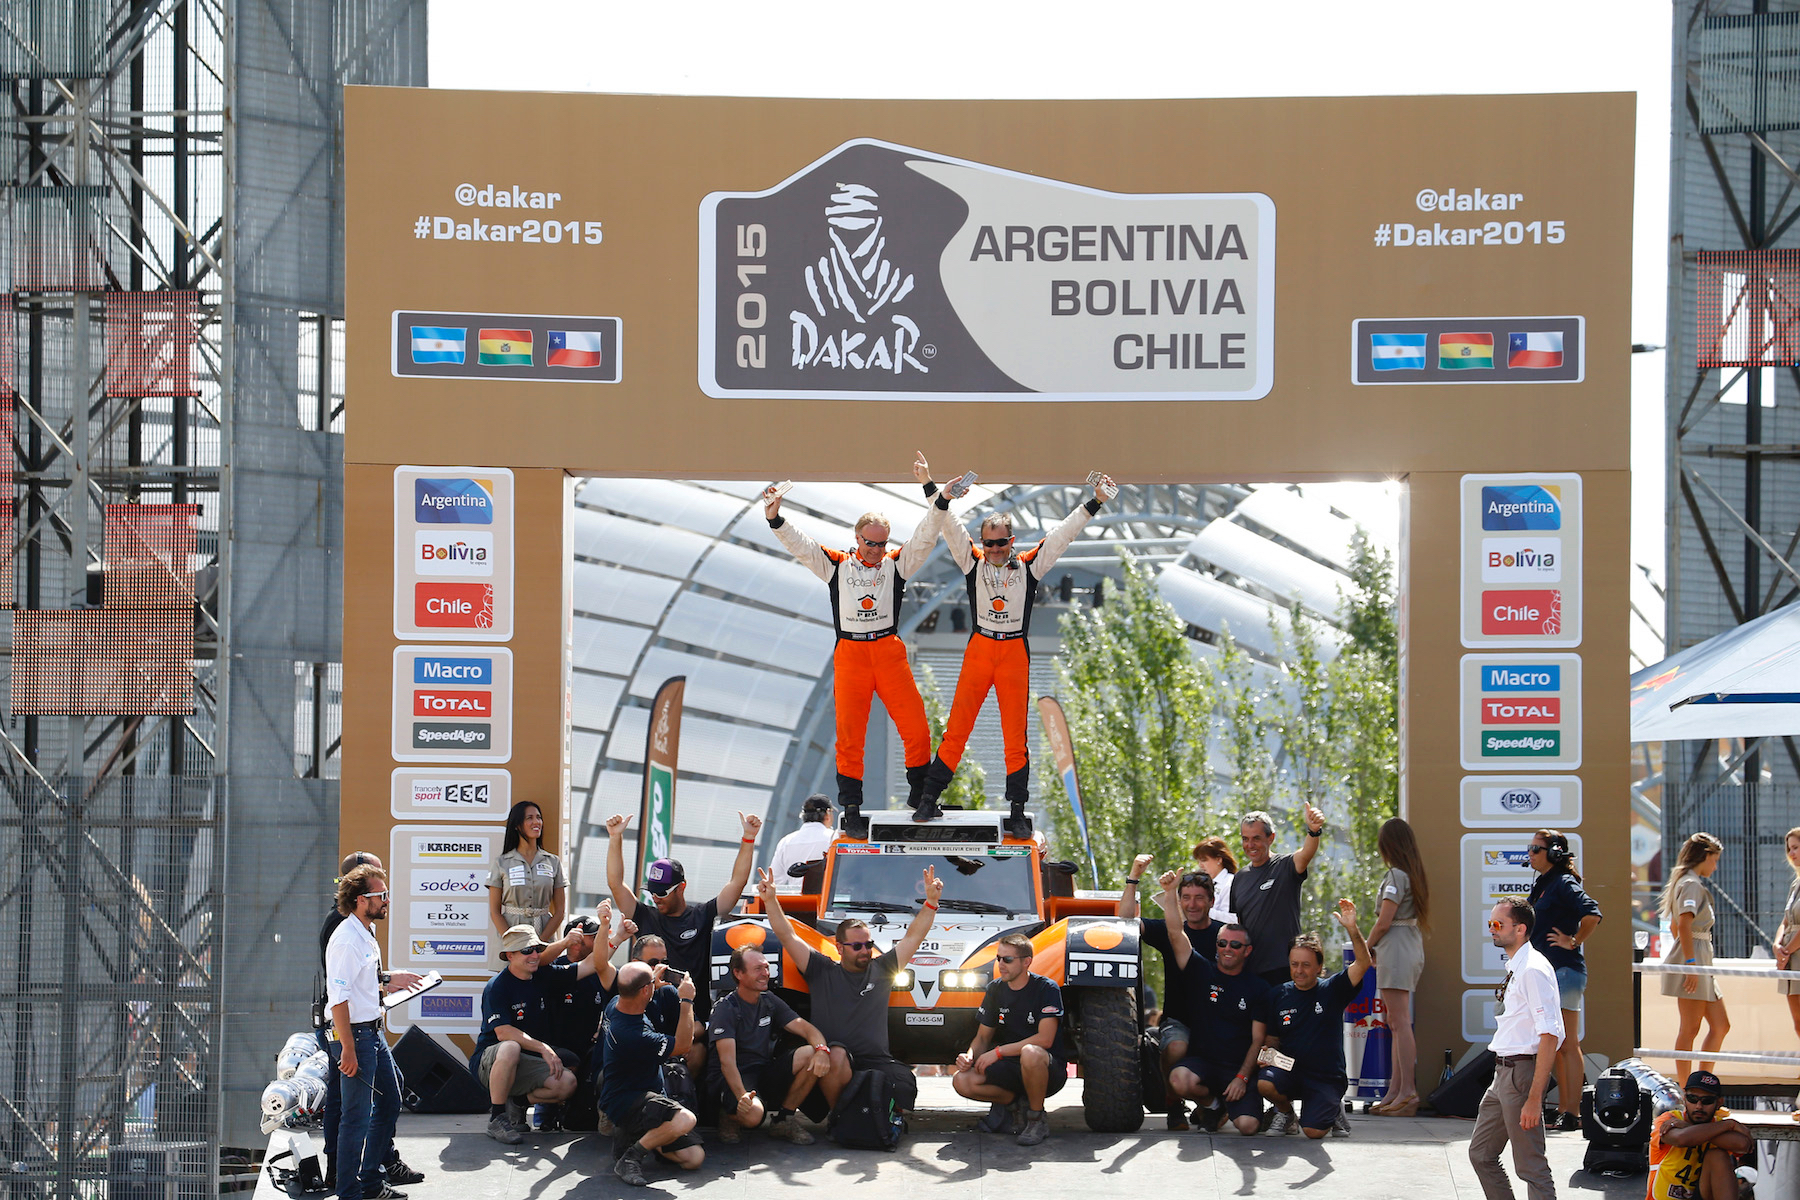 320 CHABOT Ronan (Fra) PILLOT Gilles (Fra) Smg ambiance during the Dakar 2015 Argentina Bolivia Chile, Stage 13 Finish and Podium /  Etape 13, Rosario to Buenos Aires on January 17th 2015 at Rosario, Argentina. Photo Frederic Le Floch / DPPI